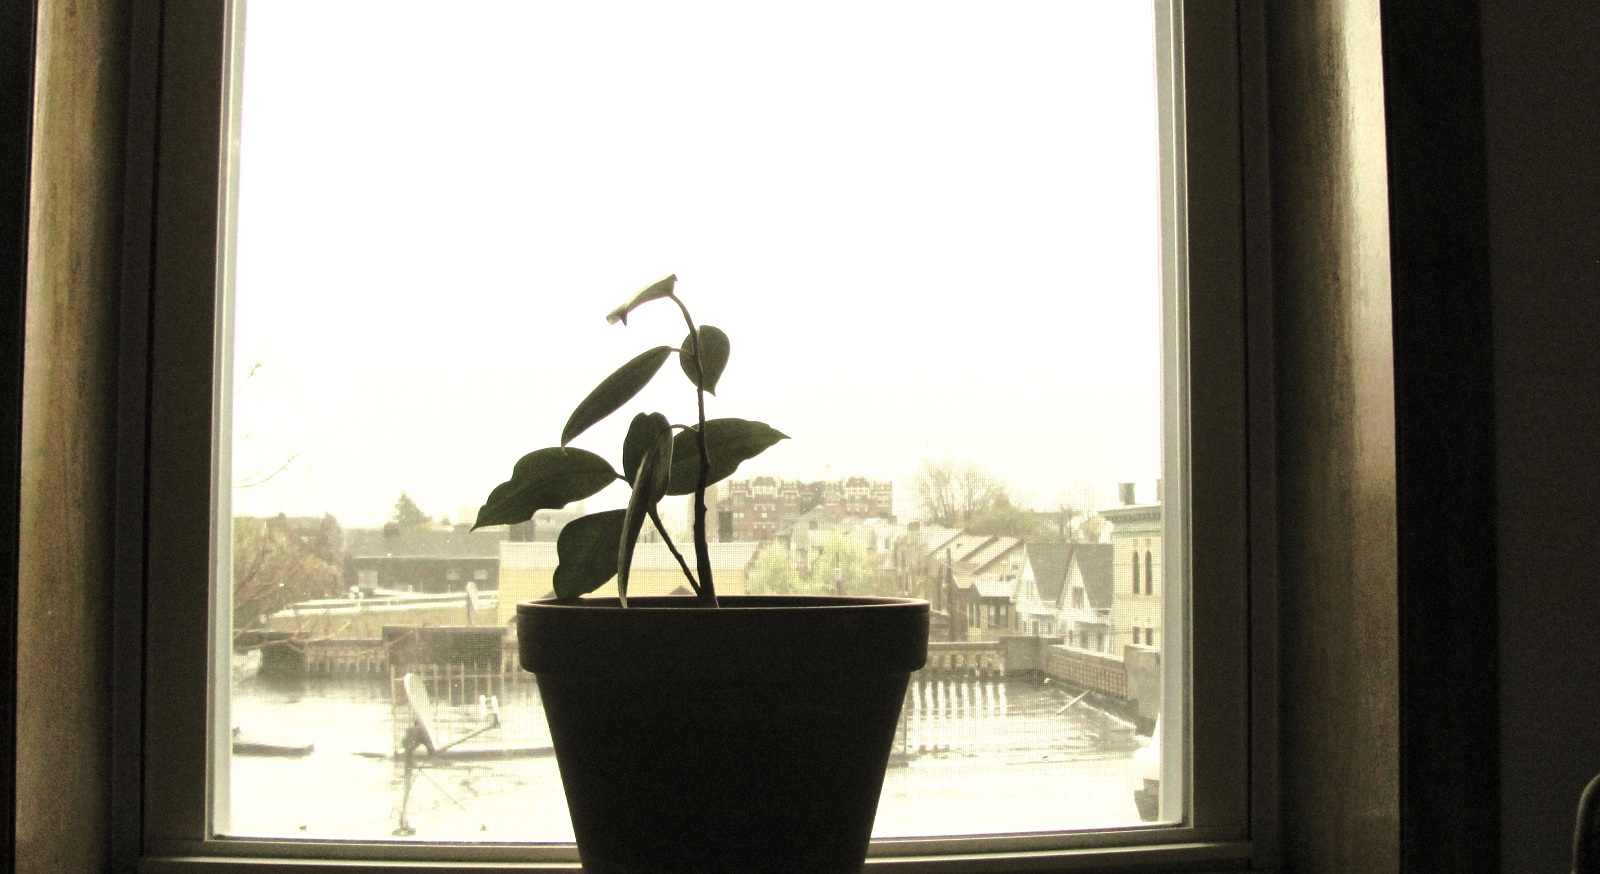 Wikibooks_planting-plant_in_window